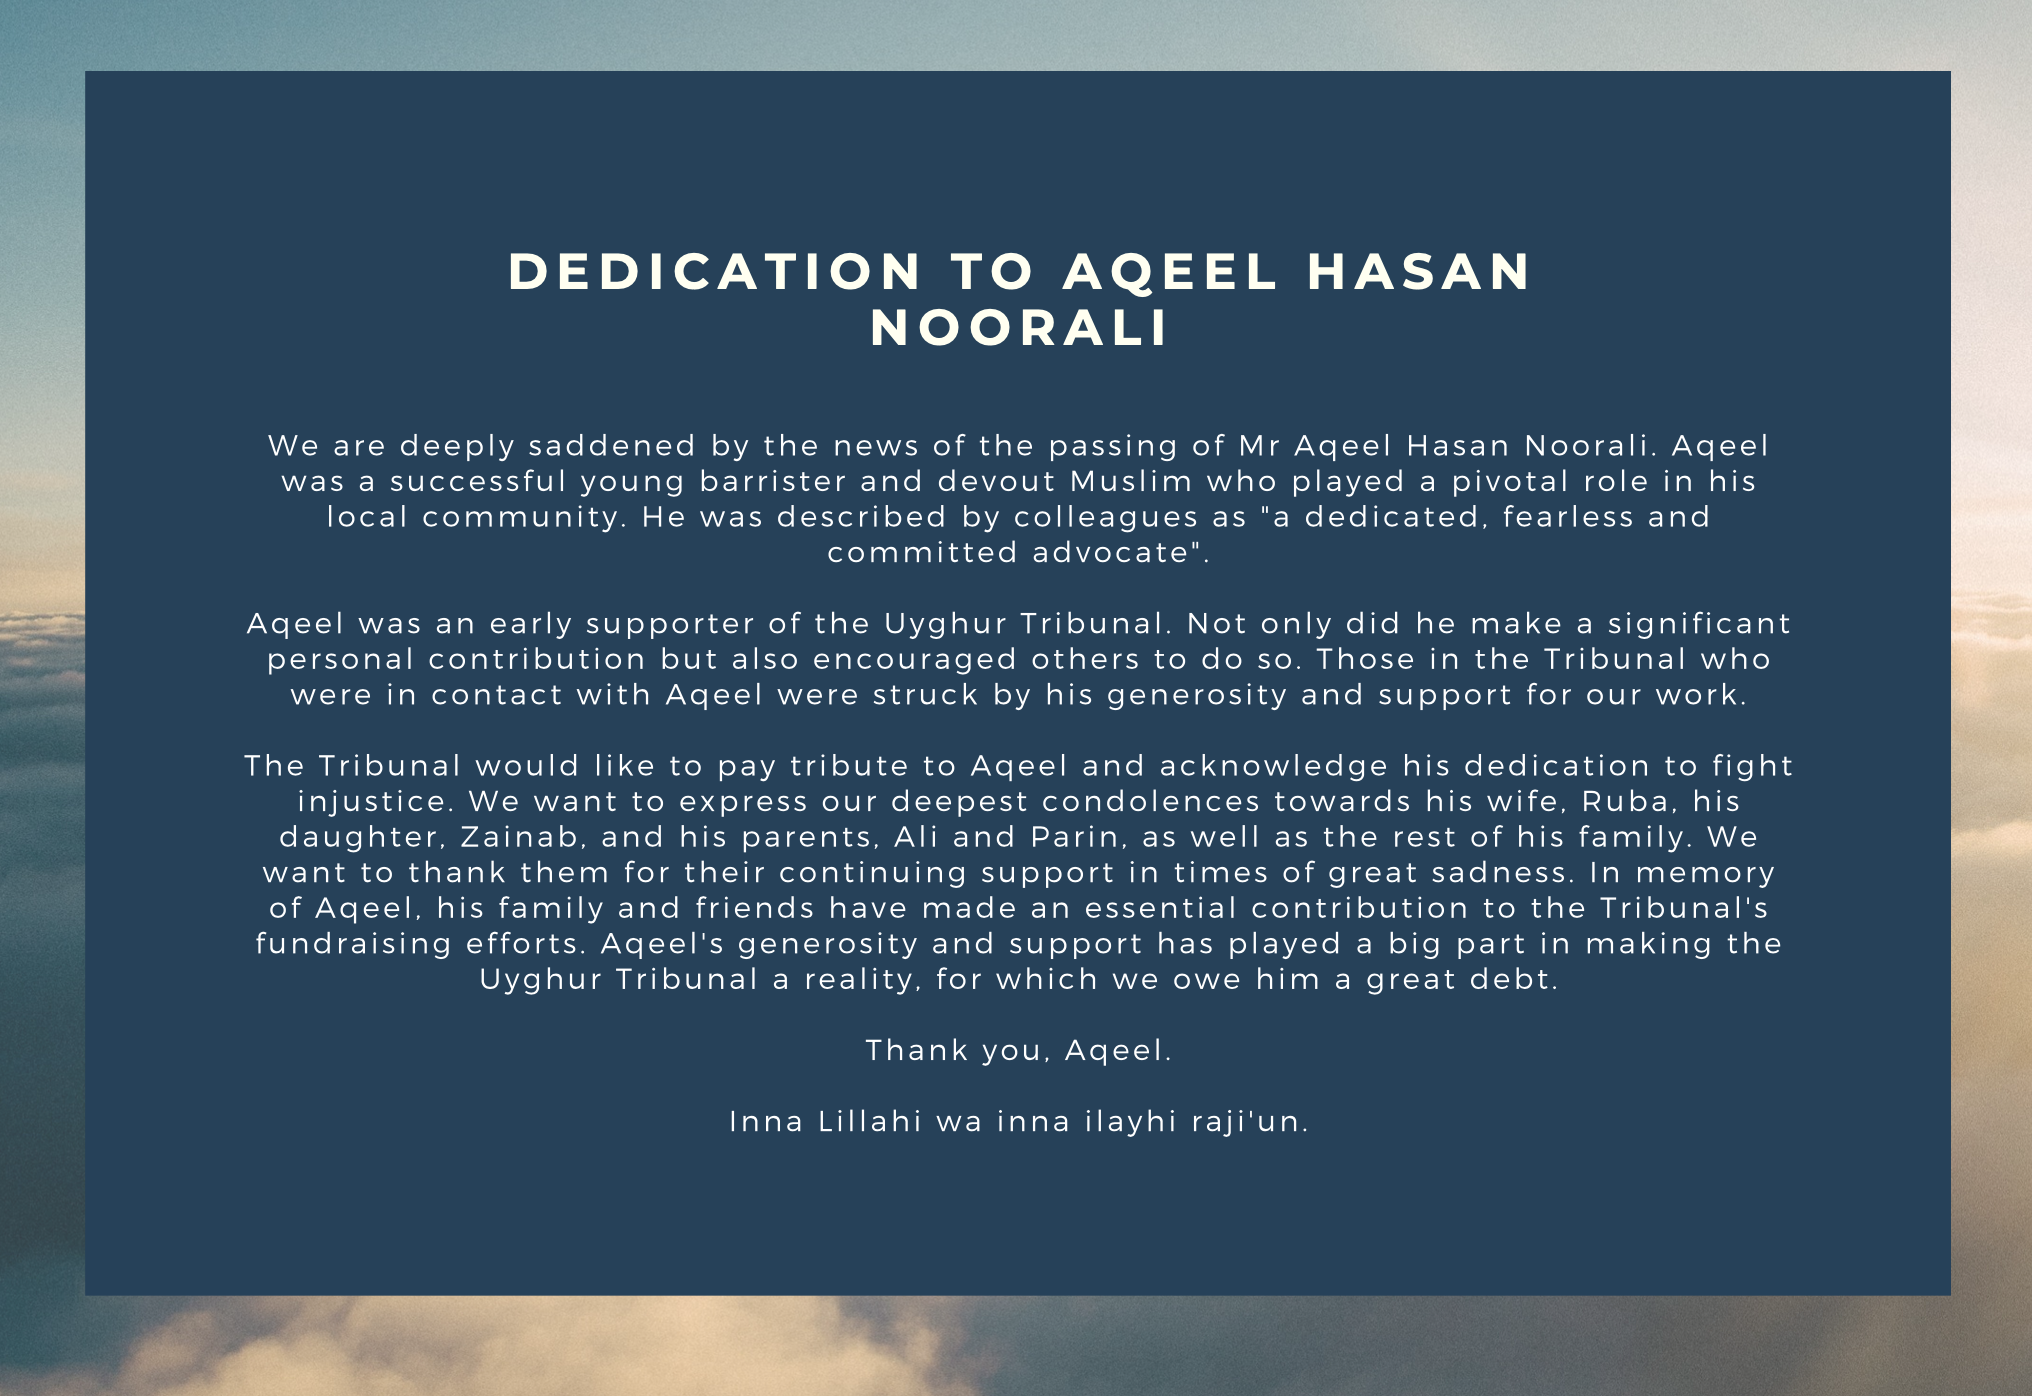 Dedication to Aqeel Hasan Noorali